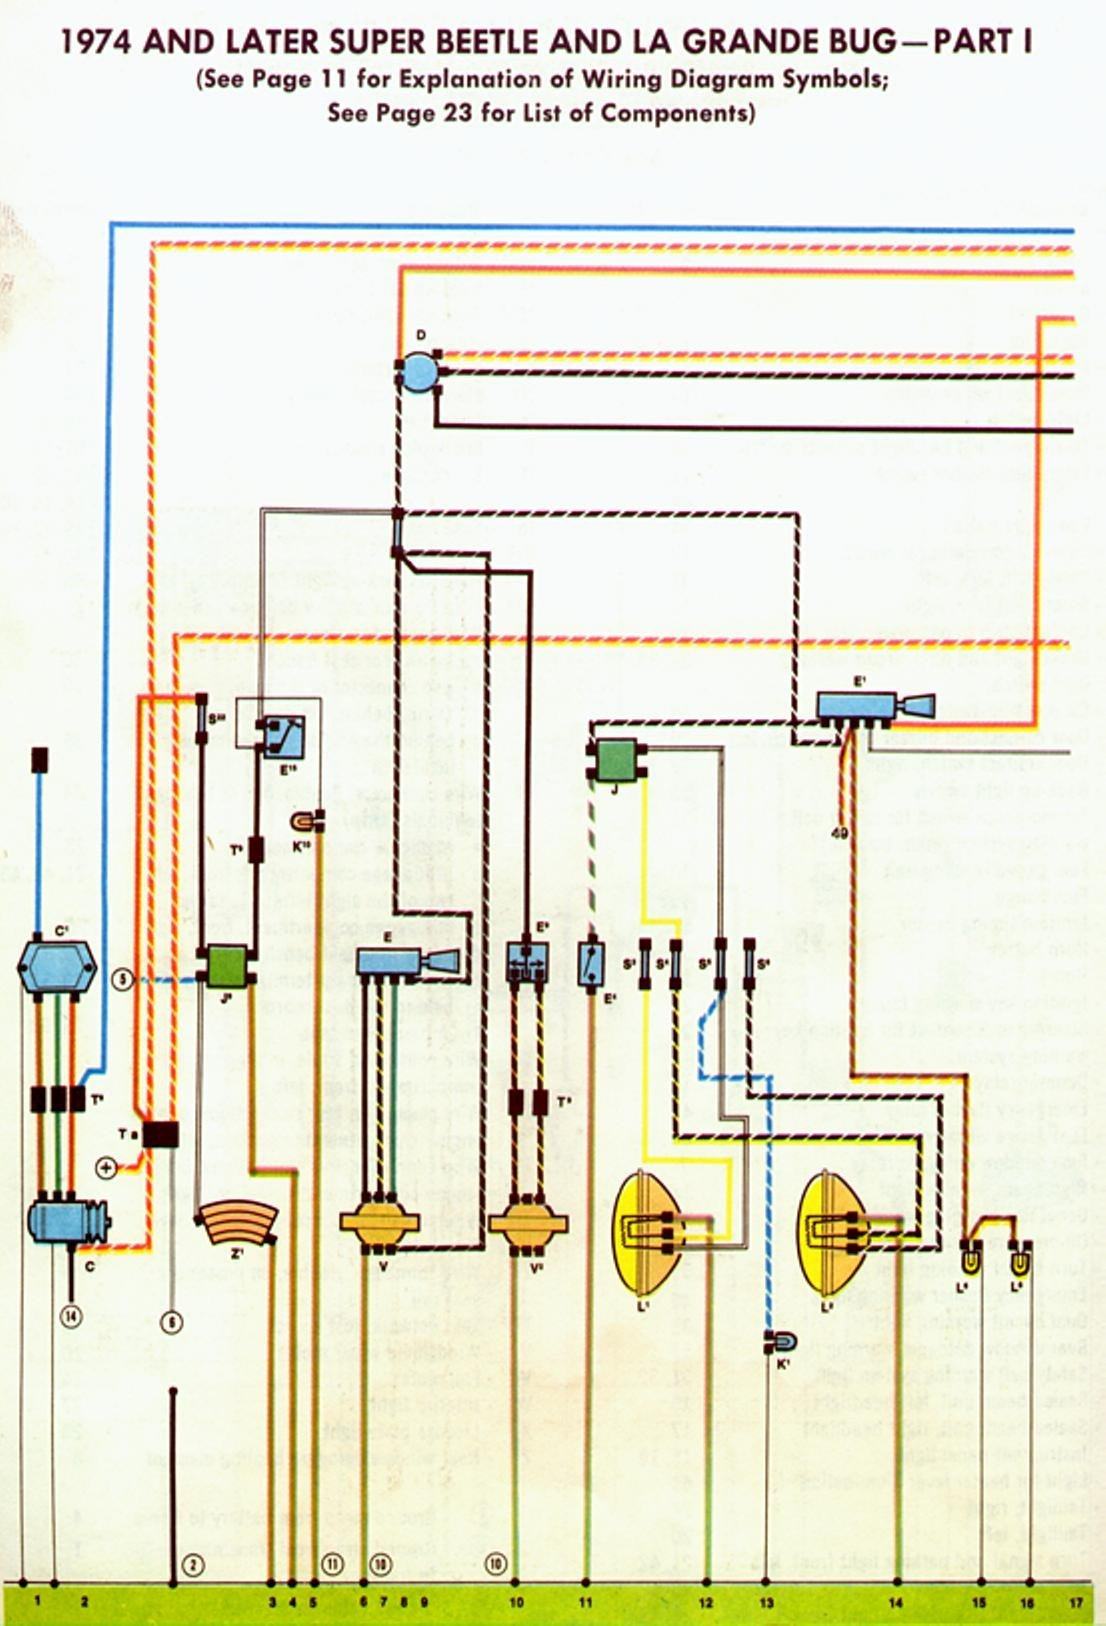 2010 06 30_210833_bug 74+75 a 74 vw bug wiring diagram cardboard tube support diagram \u2022 free vw wiring diagram symbols at fashall.co